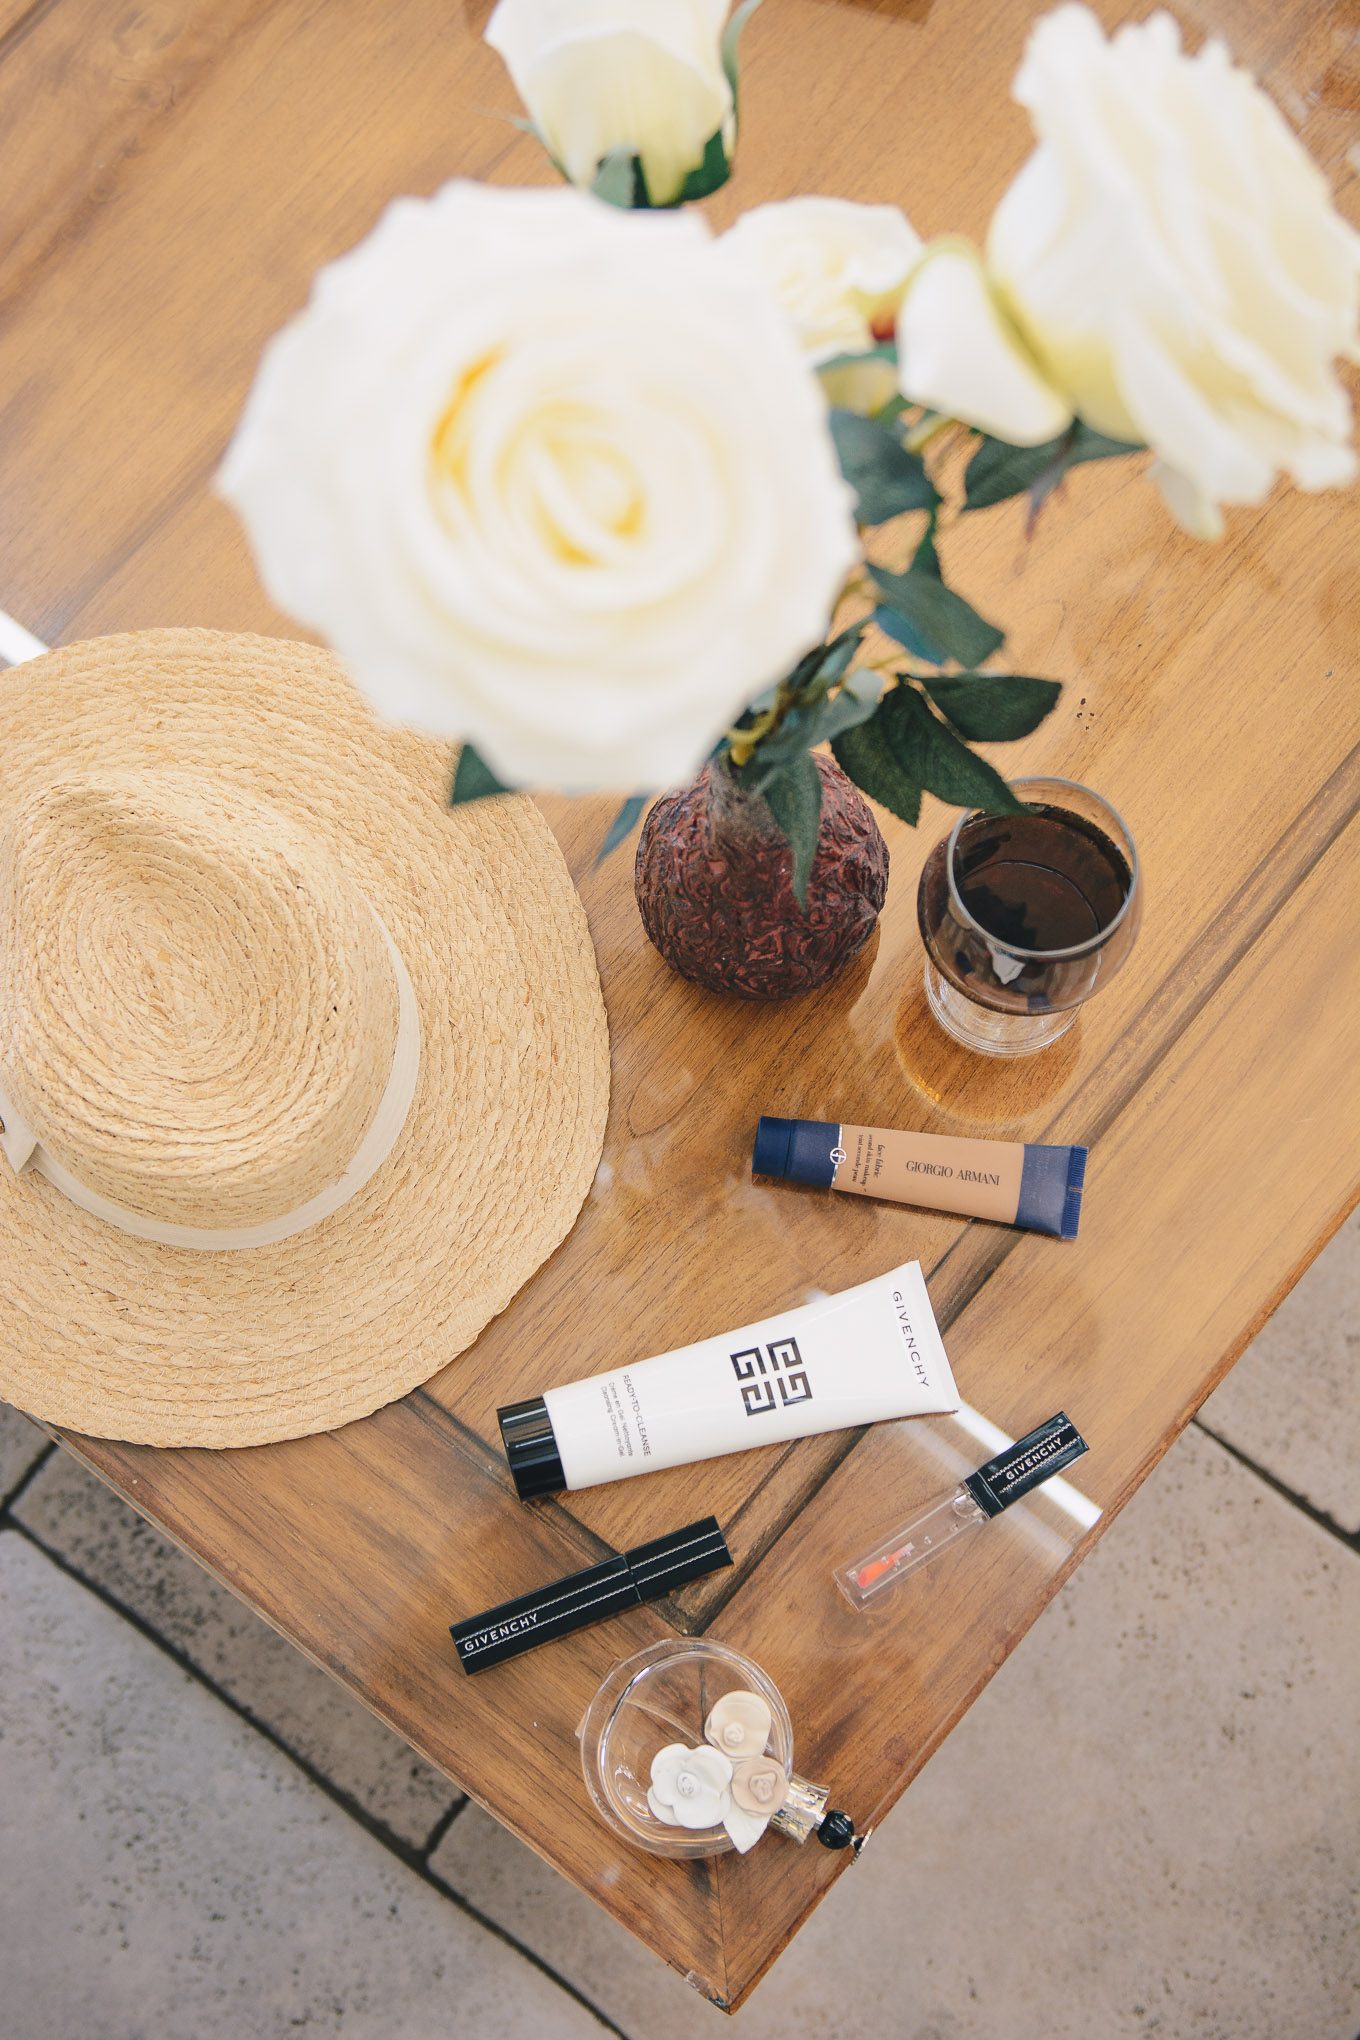 Current Givenchy products I use